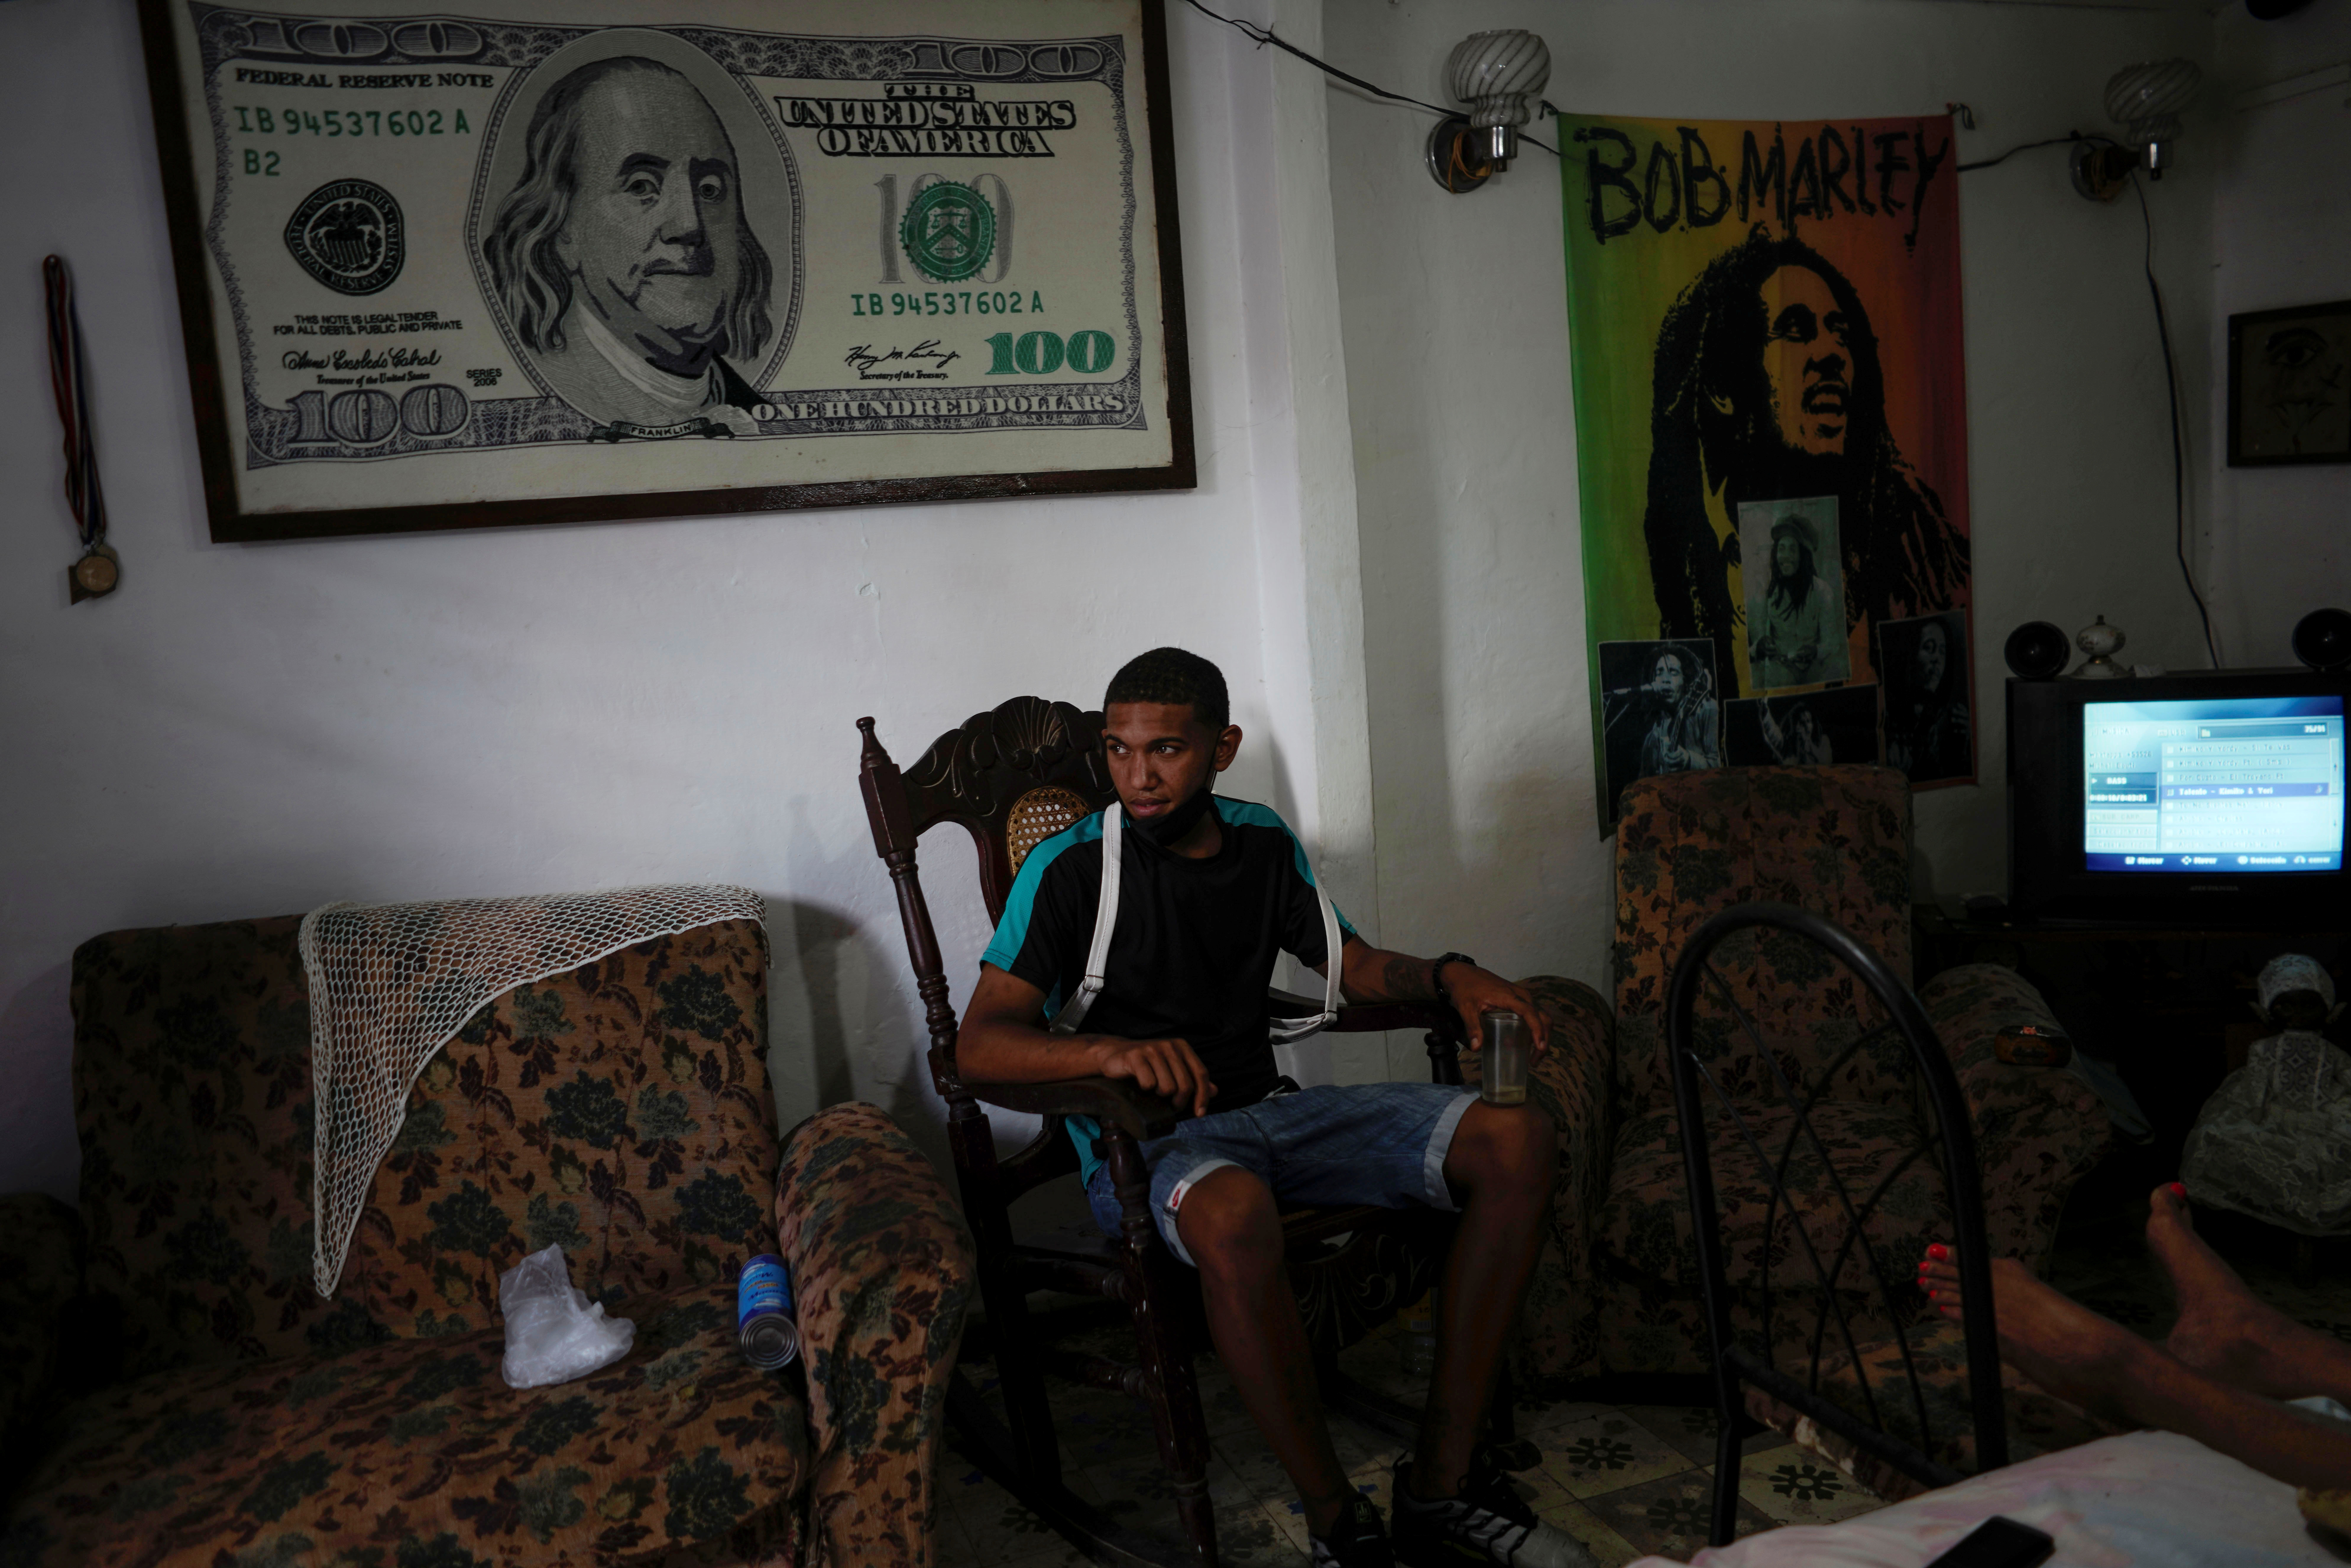 Student Alberto Martinez, 20, talks to relatives (not pictured) under an image with the design of a U.S. $100 bill in Havana, Cuba, March 17, 2021. Picture taken on March 17, 2021. REUTERS/Alexandre Meneghini